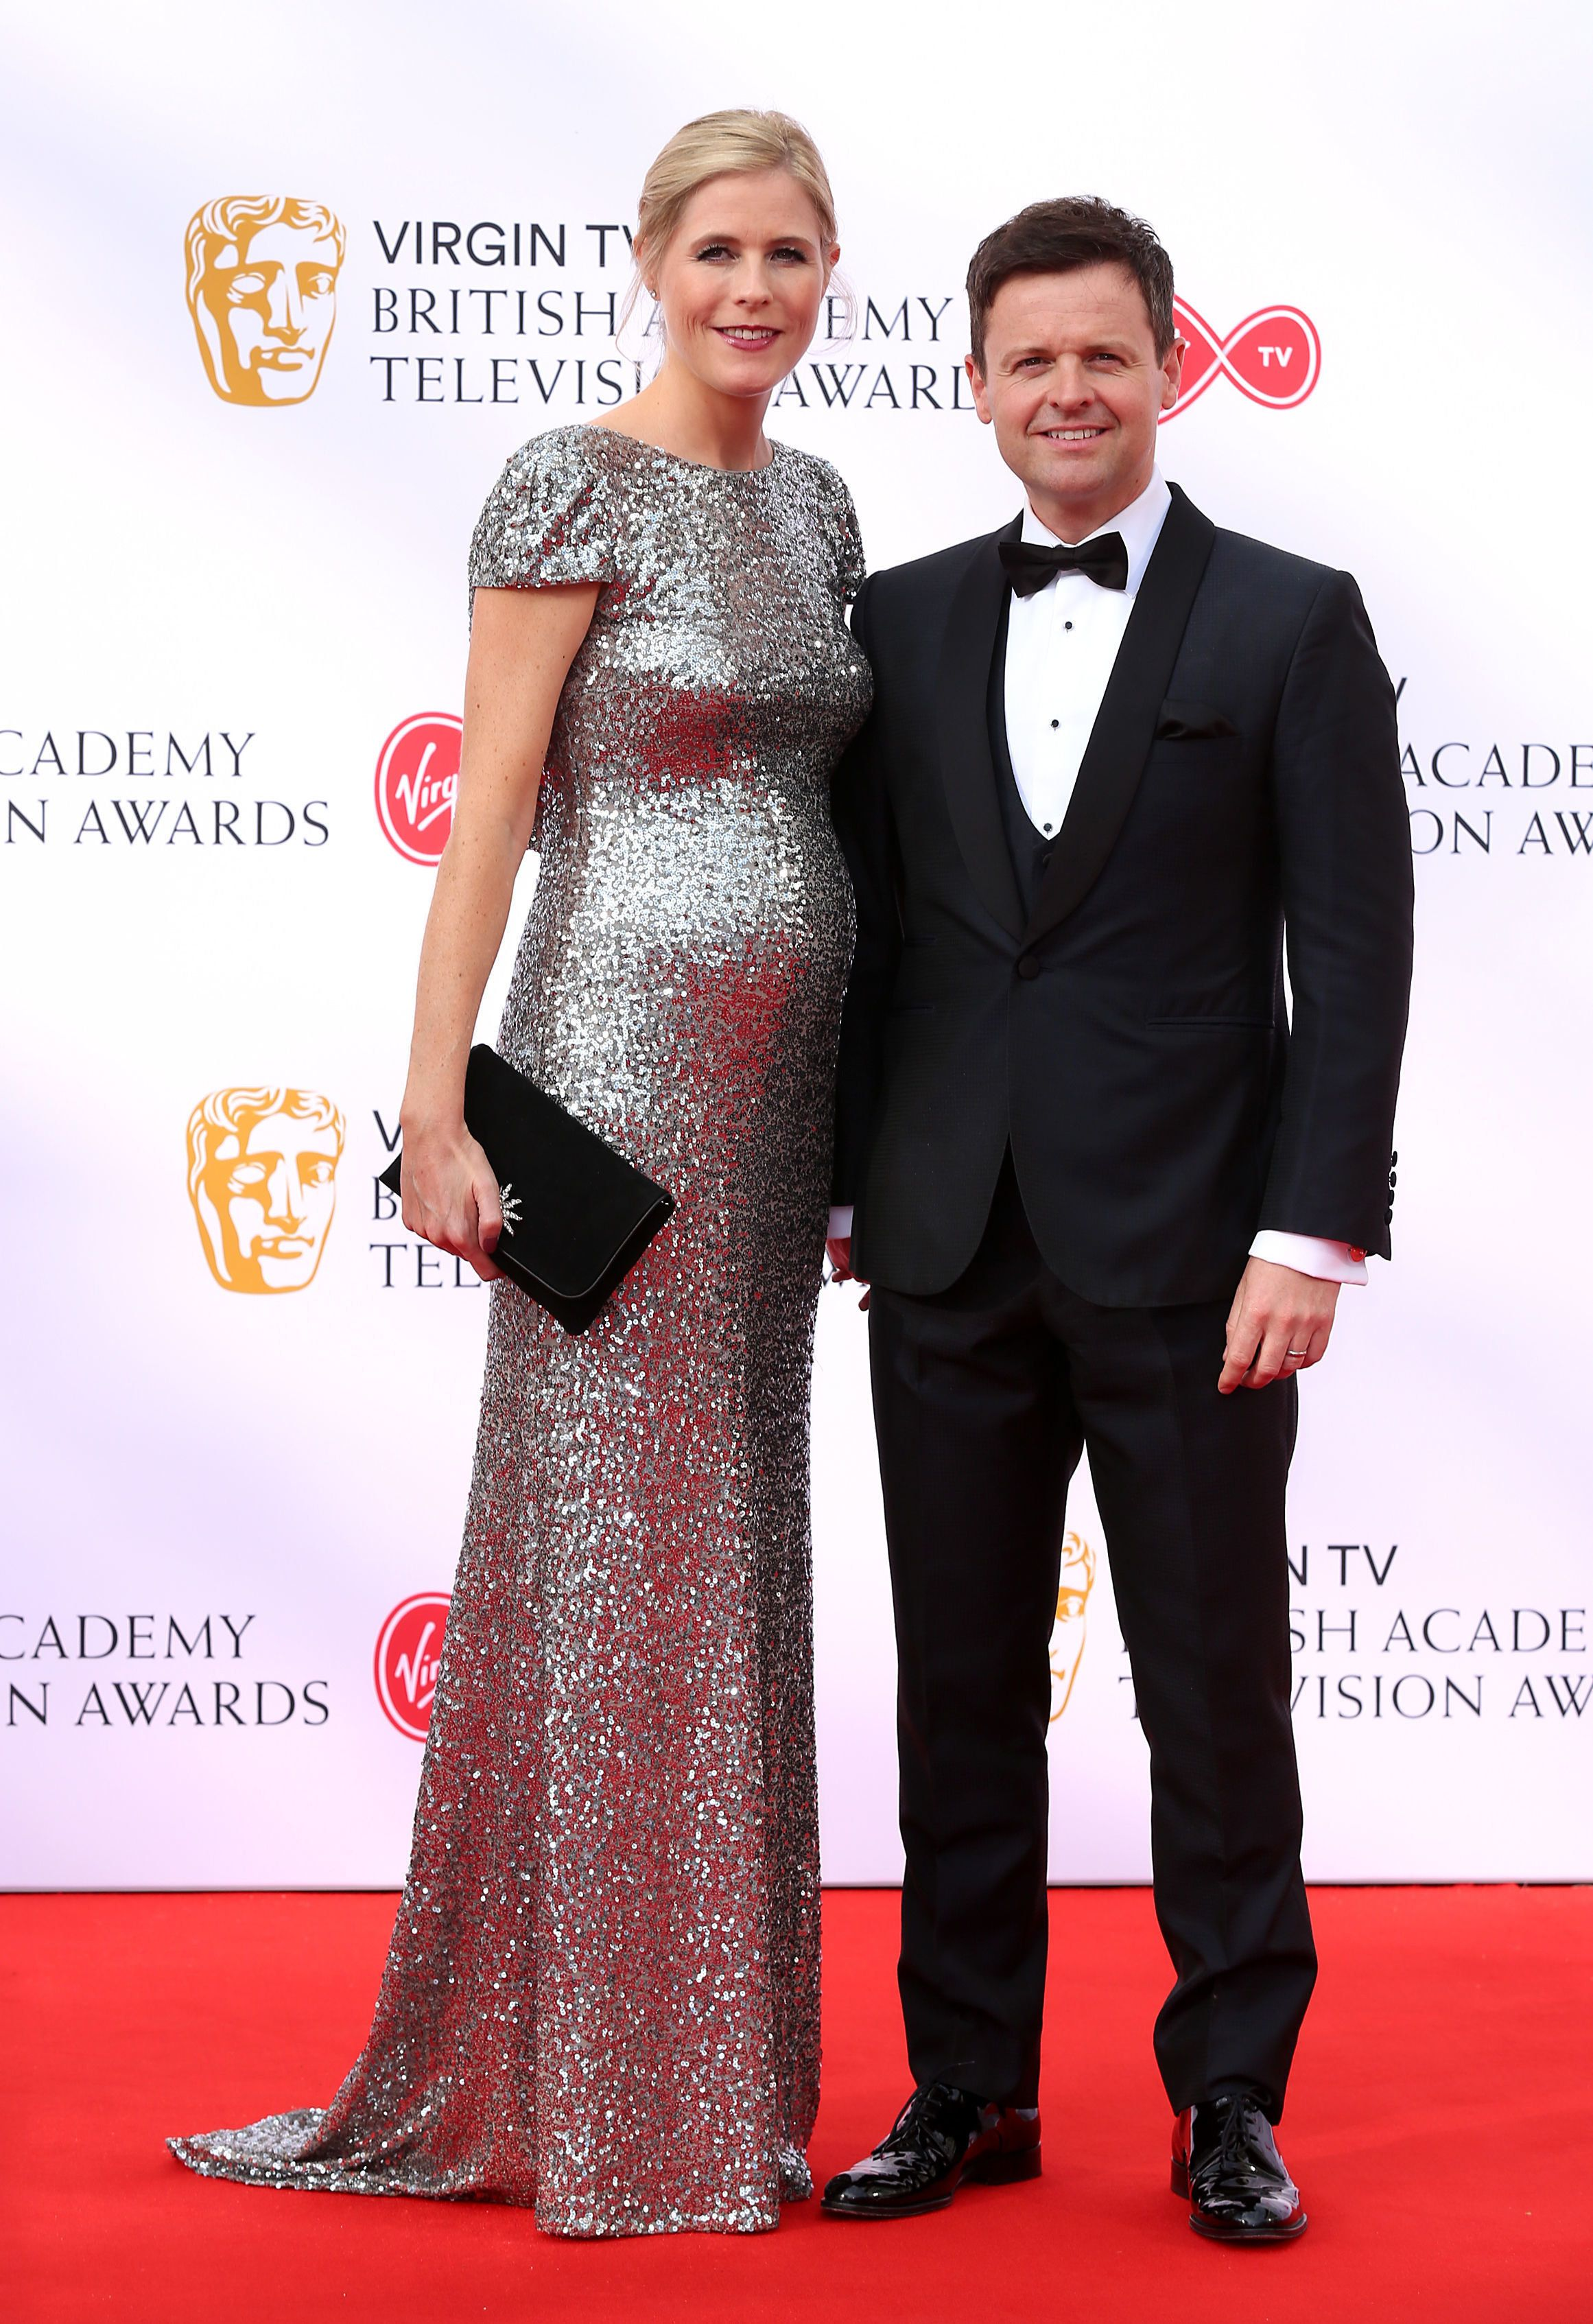 Declan Donnelly And Wife Ali Astall Welcome First Child, Daughter Isla Elizabeth